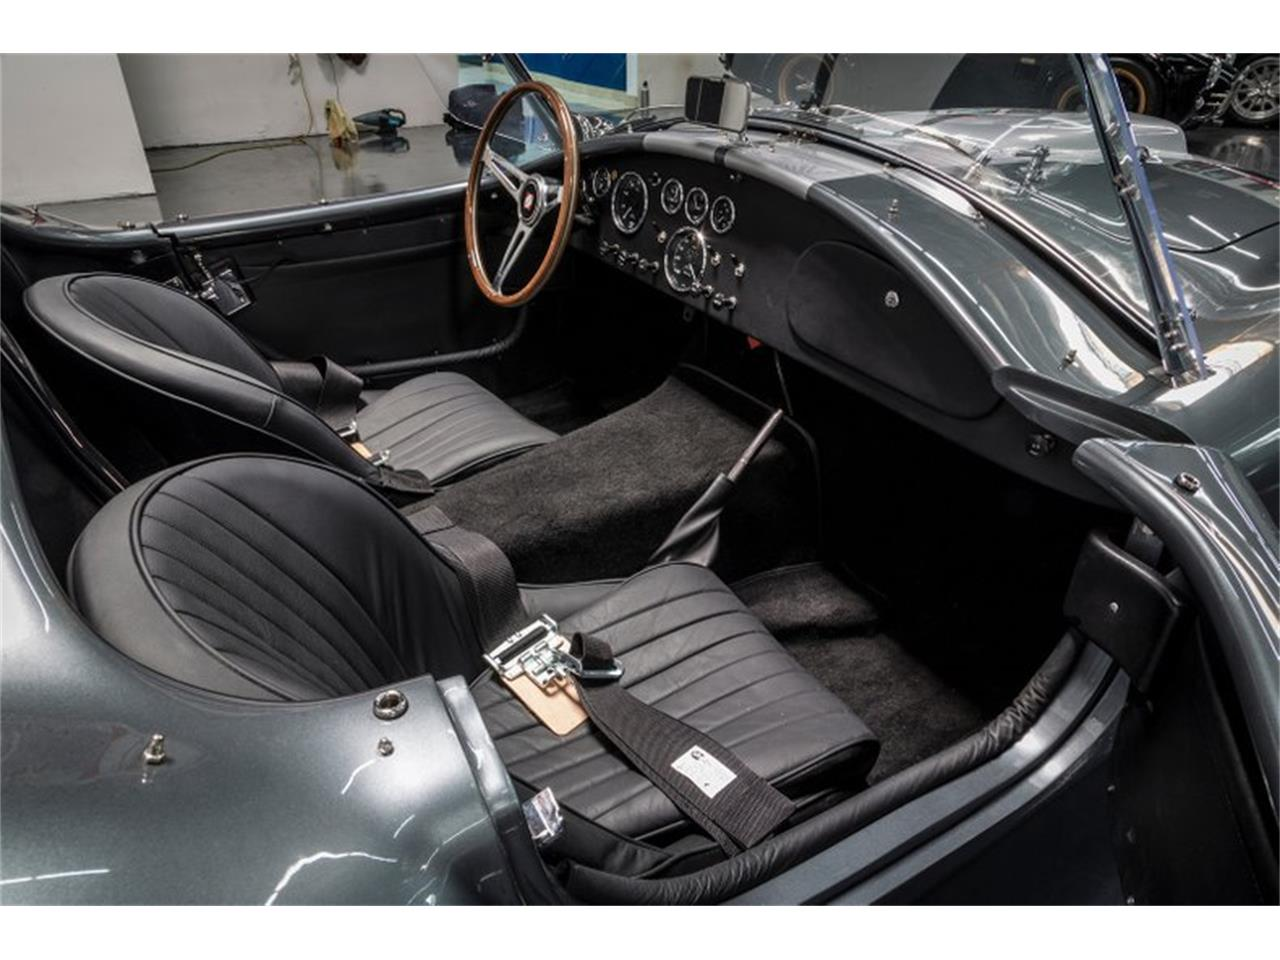 1900 Superformance MKIII for sale in Irvine, CA – photo 16